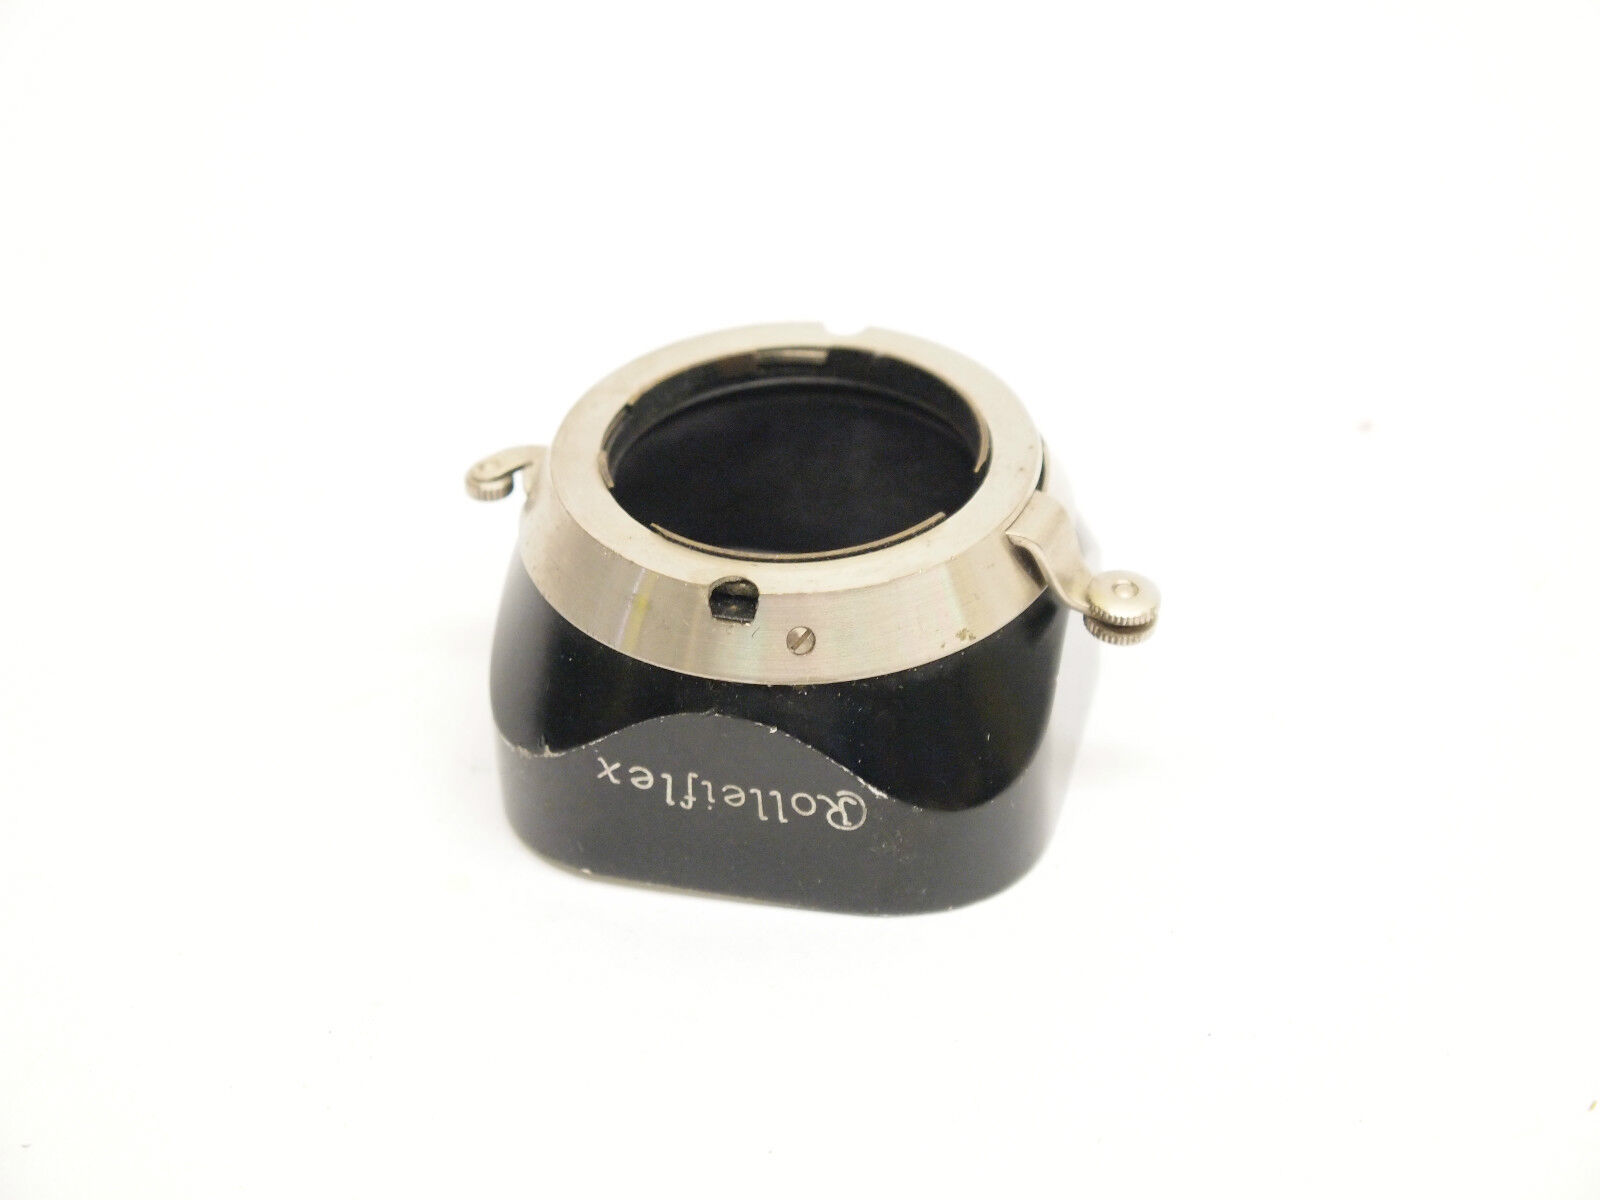 Rolleiflex Rare TLR Push-On Lens hood with attachment Clips.28mm diameter